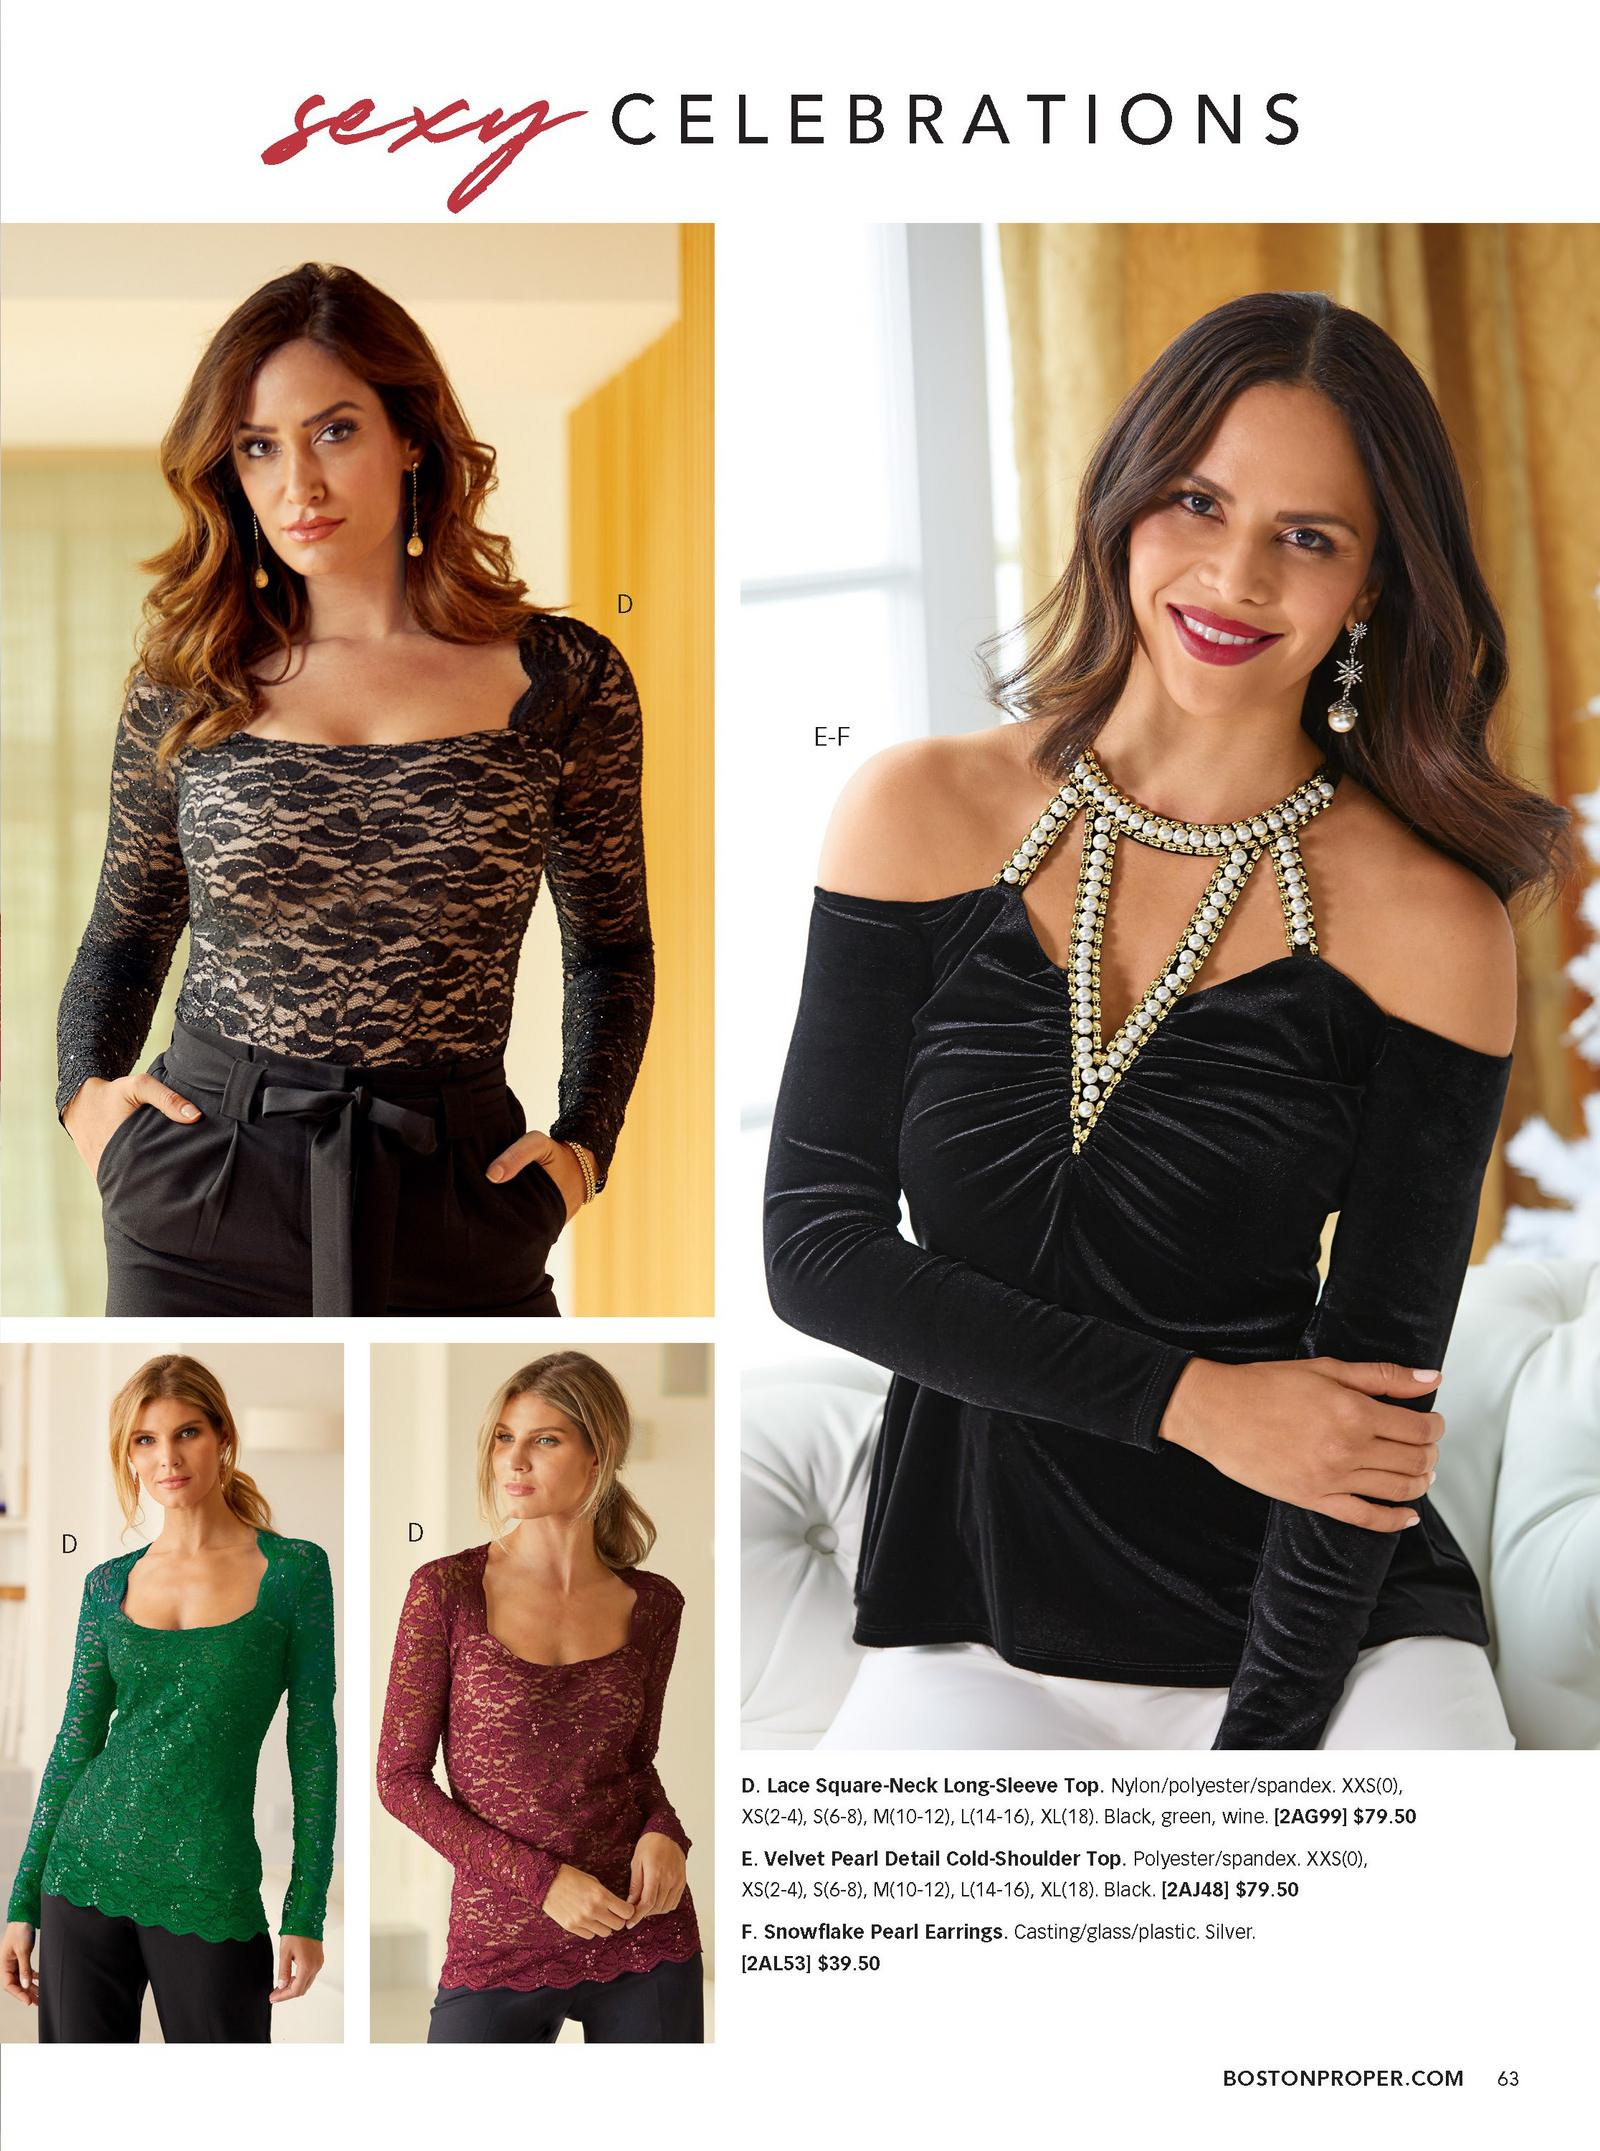 left model wearing black and tan lace top, also shown in green and wine. right model wearing black velvet top with pearl detail.